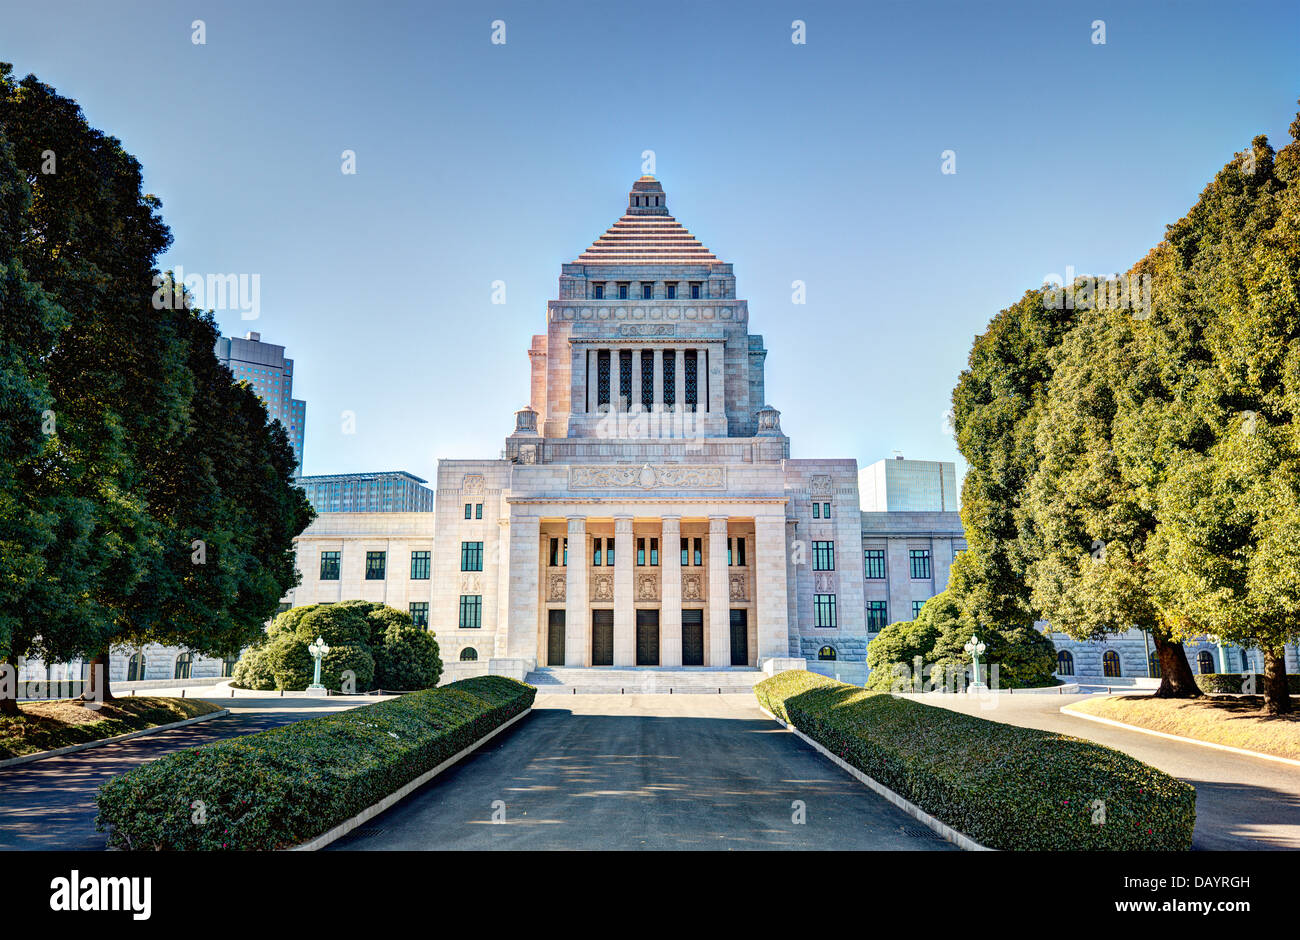 Das National Diet House of Japan. Stockbild